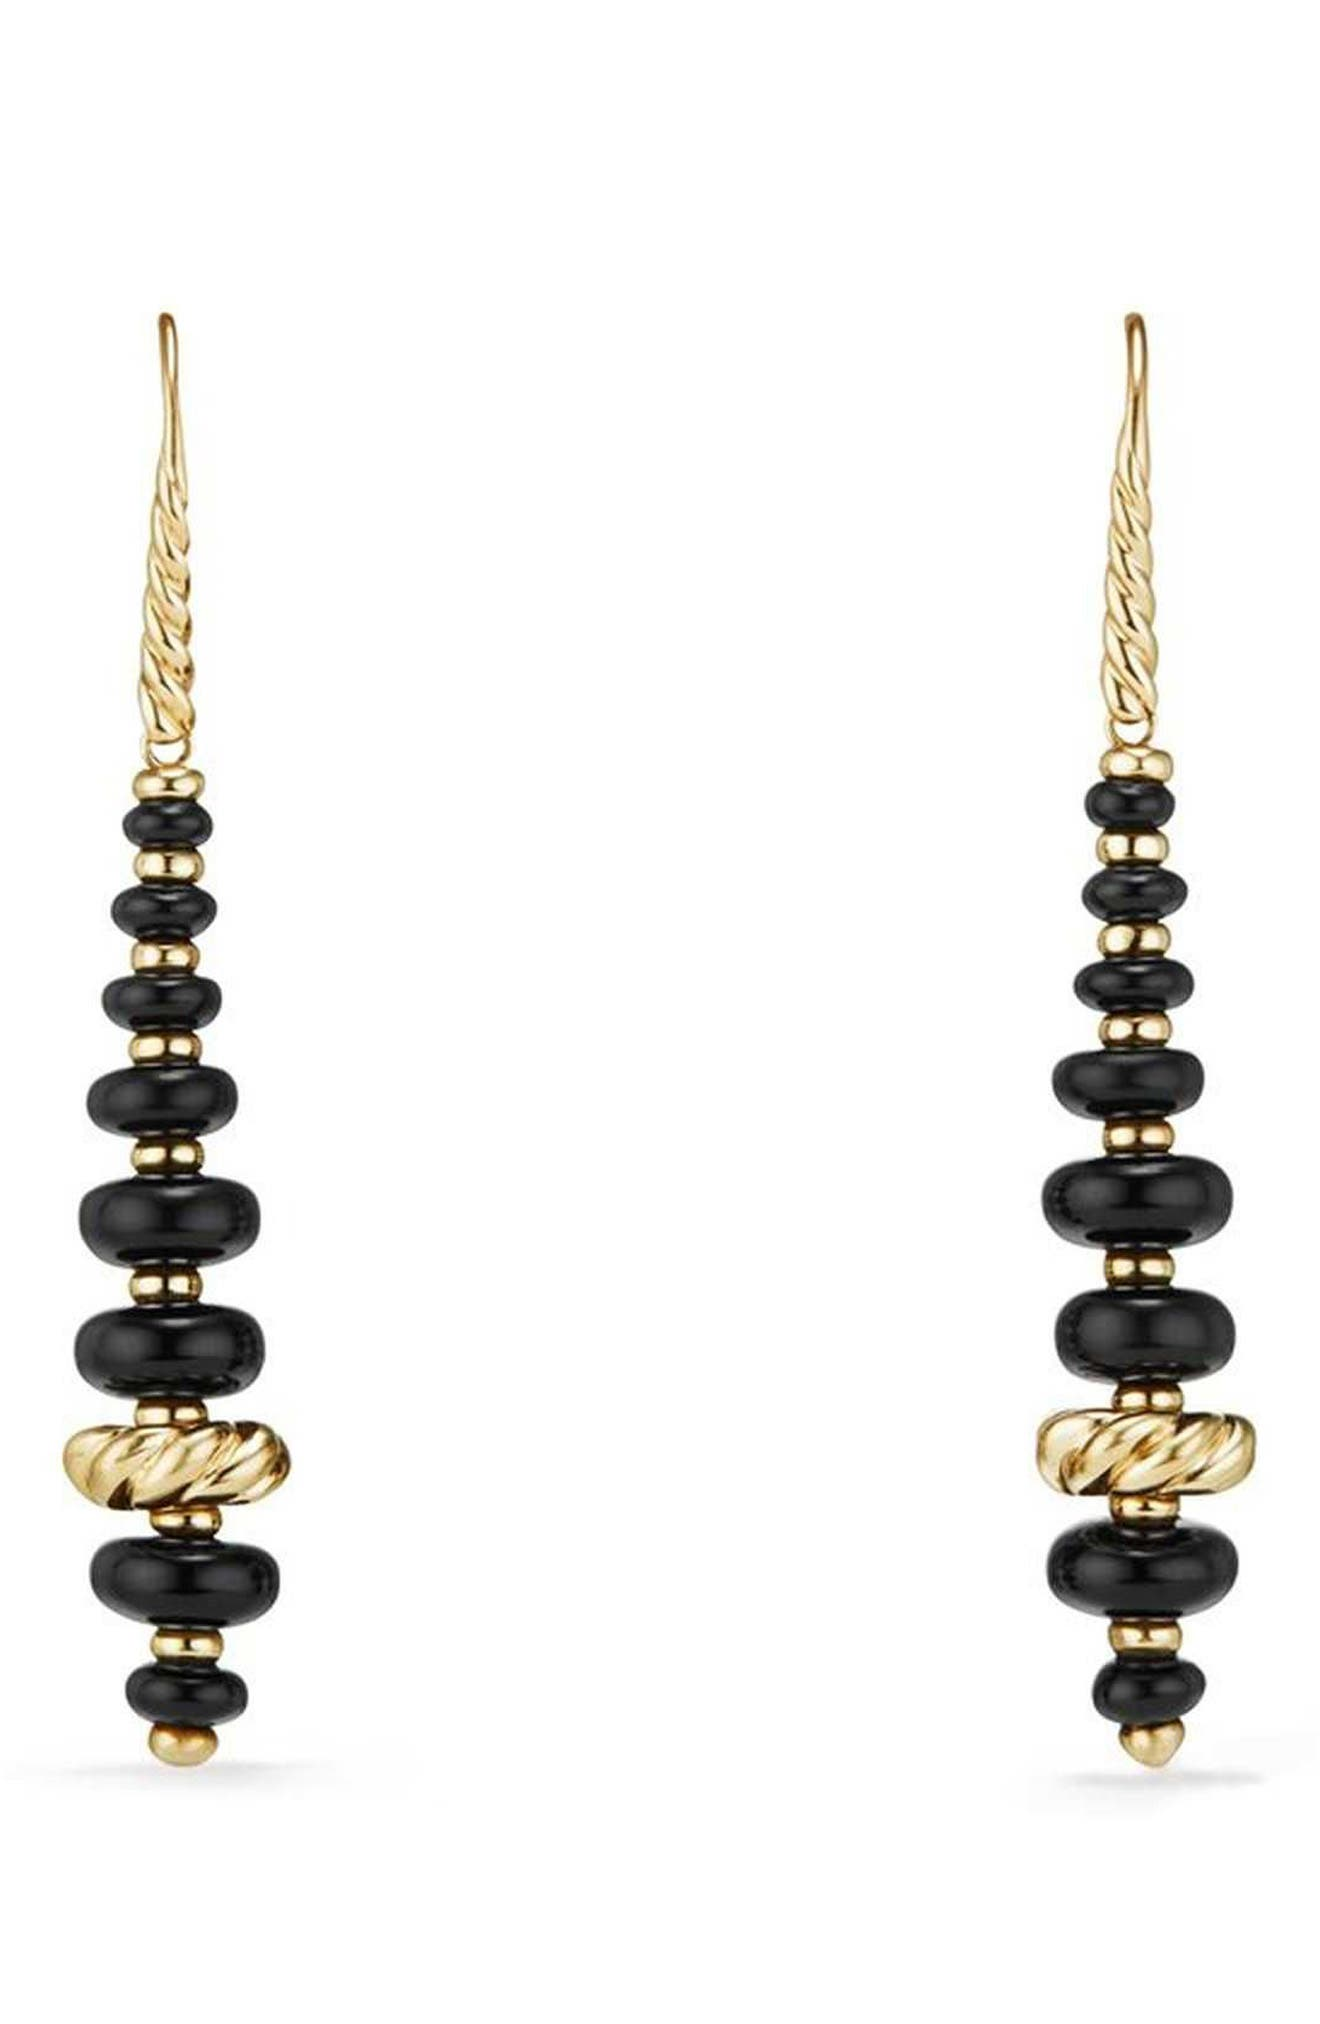 Rio Rondelle Drop Earrings in 18K Gold,                             Main thumbnail 1, color,                             GOLD/ BLACK ONYX